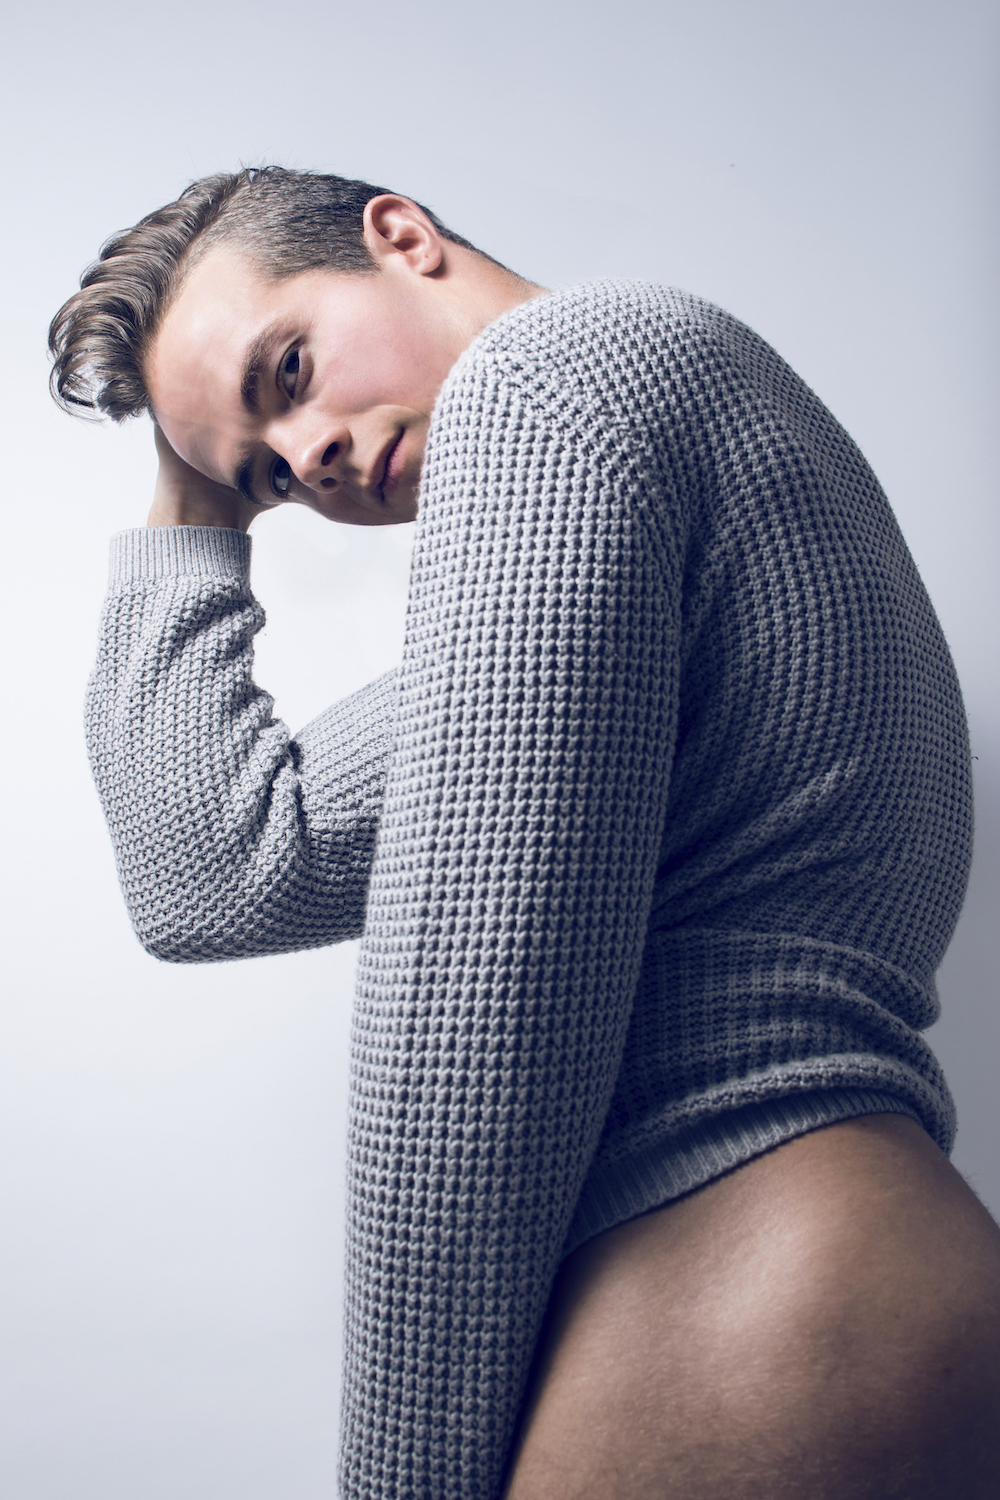 Dancer Boy Will Lucas by Max Parker for CAJ